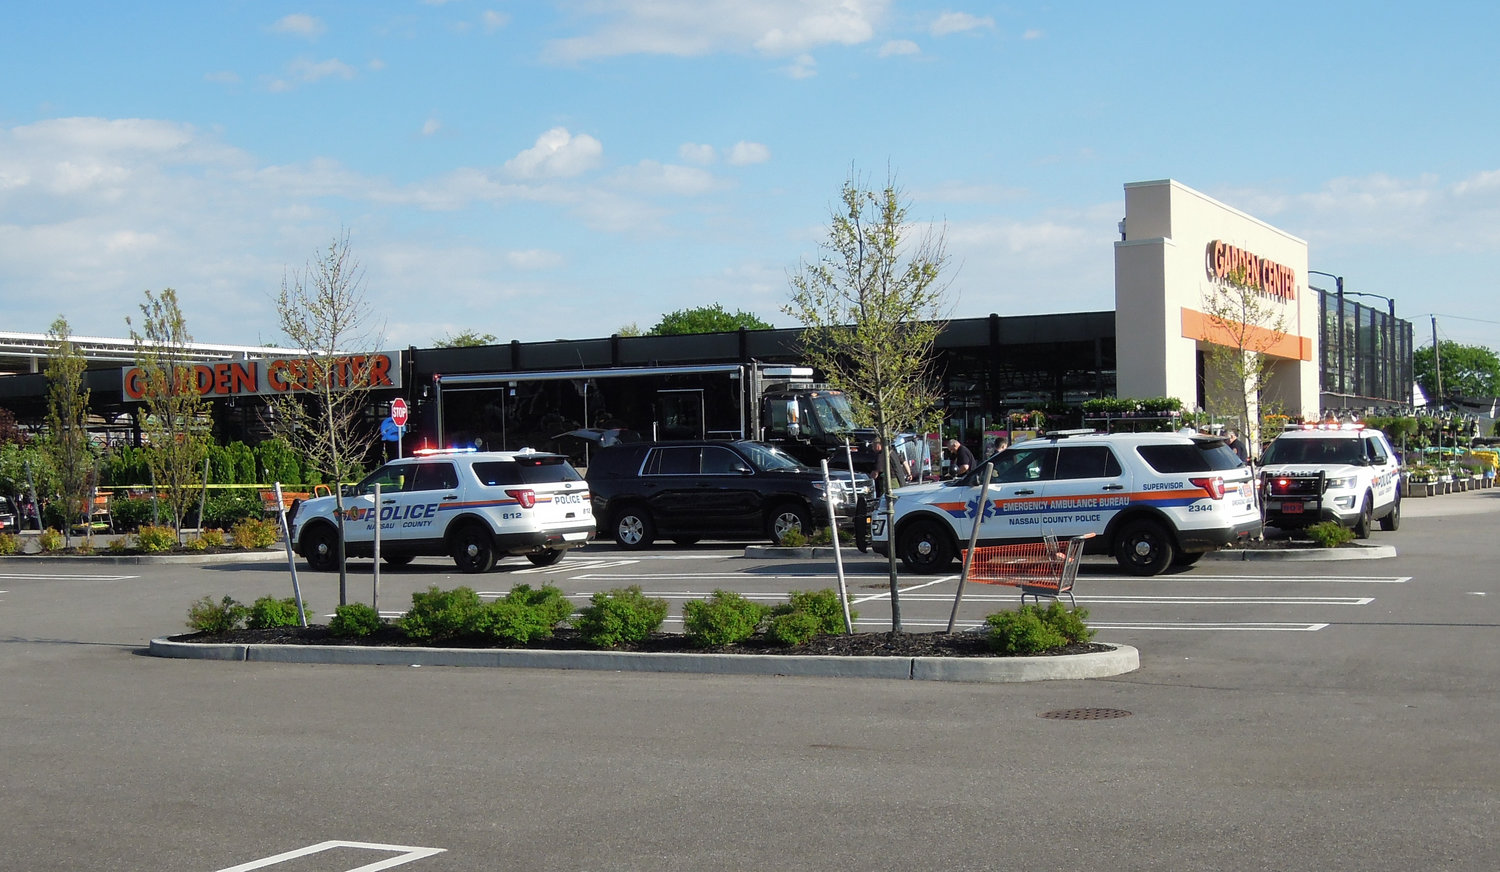 Police vehicles surrounded the Home Depot store and garden center on Hempstead Turnpike in Levittown on Wednesday as a suspicious package was investigated by the NCPD bomb squad.